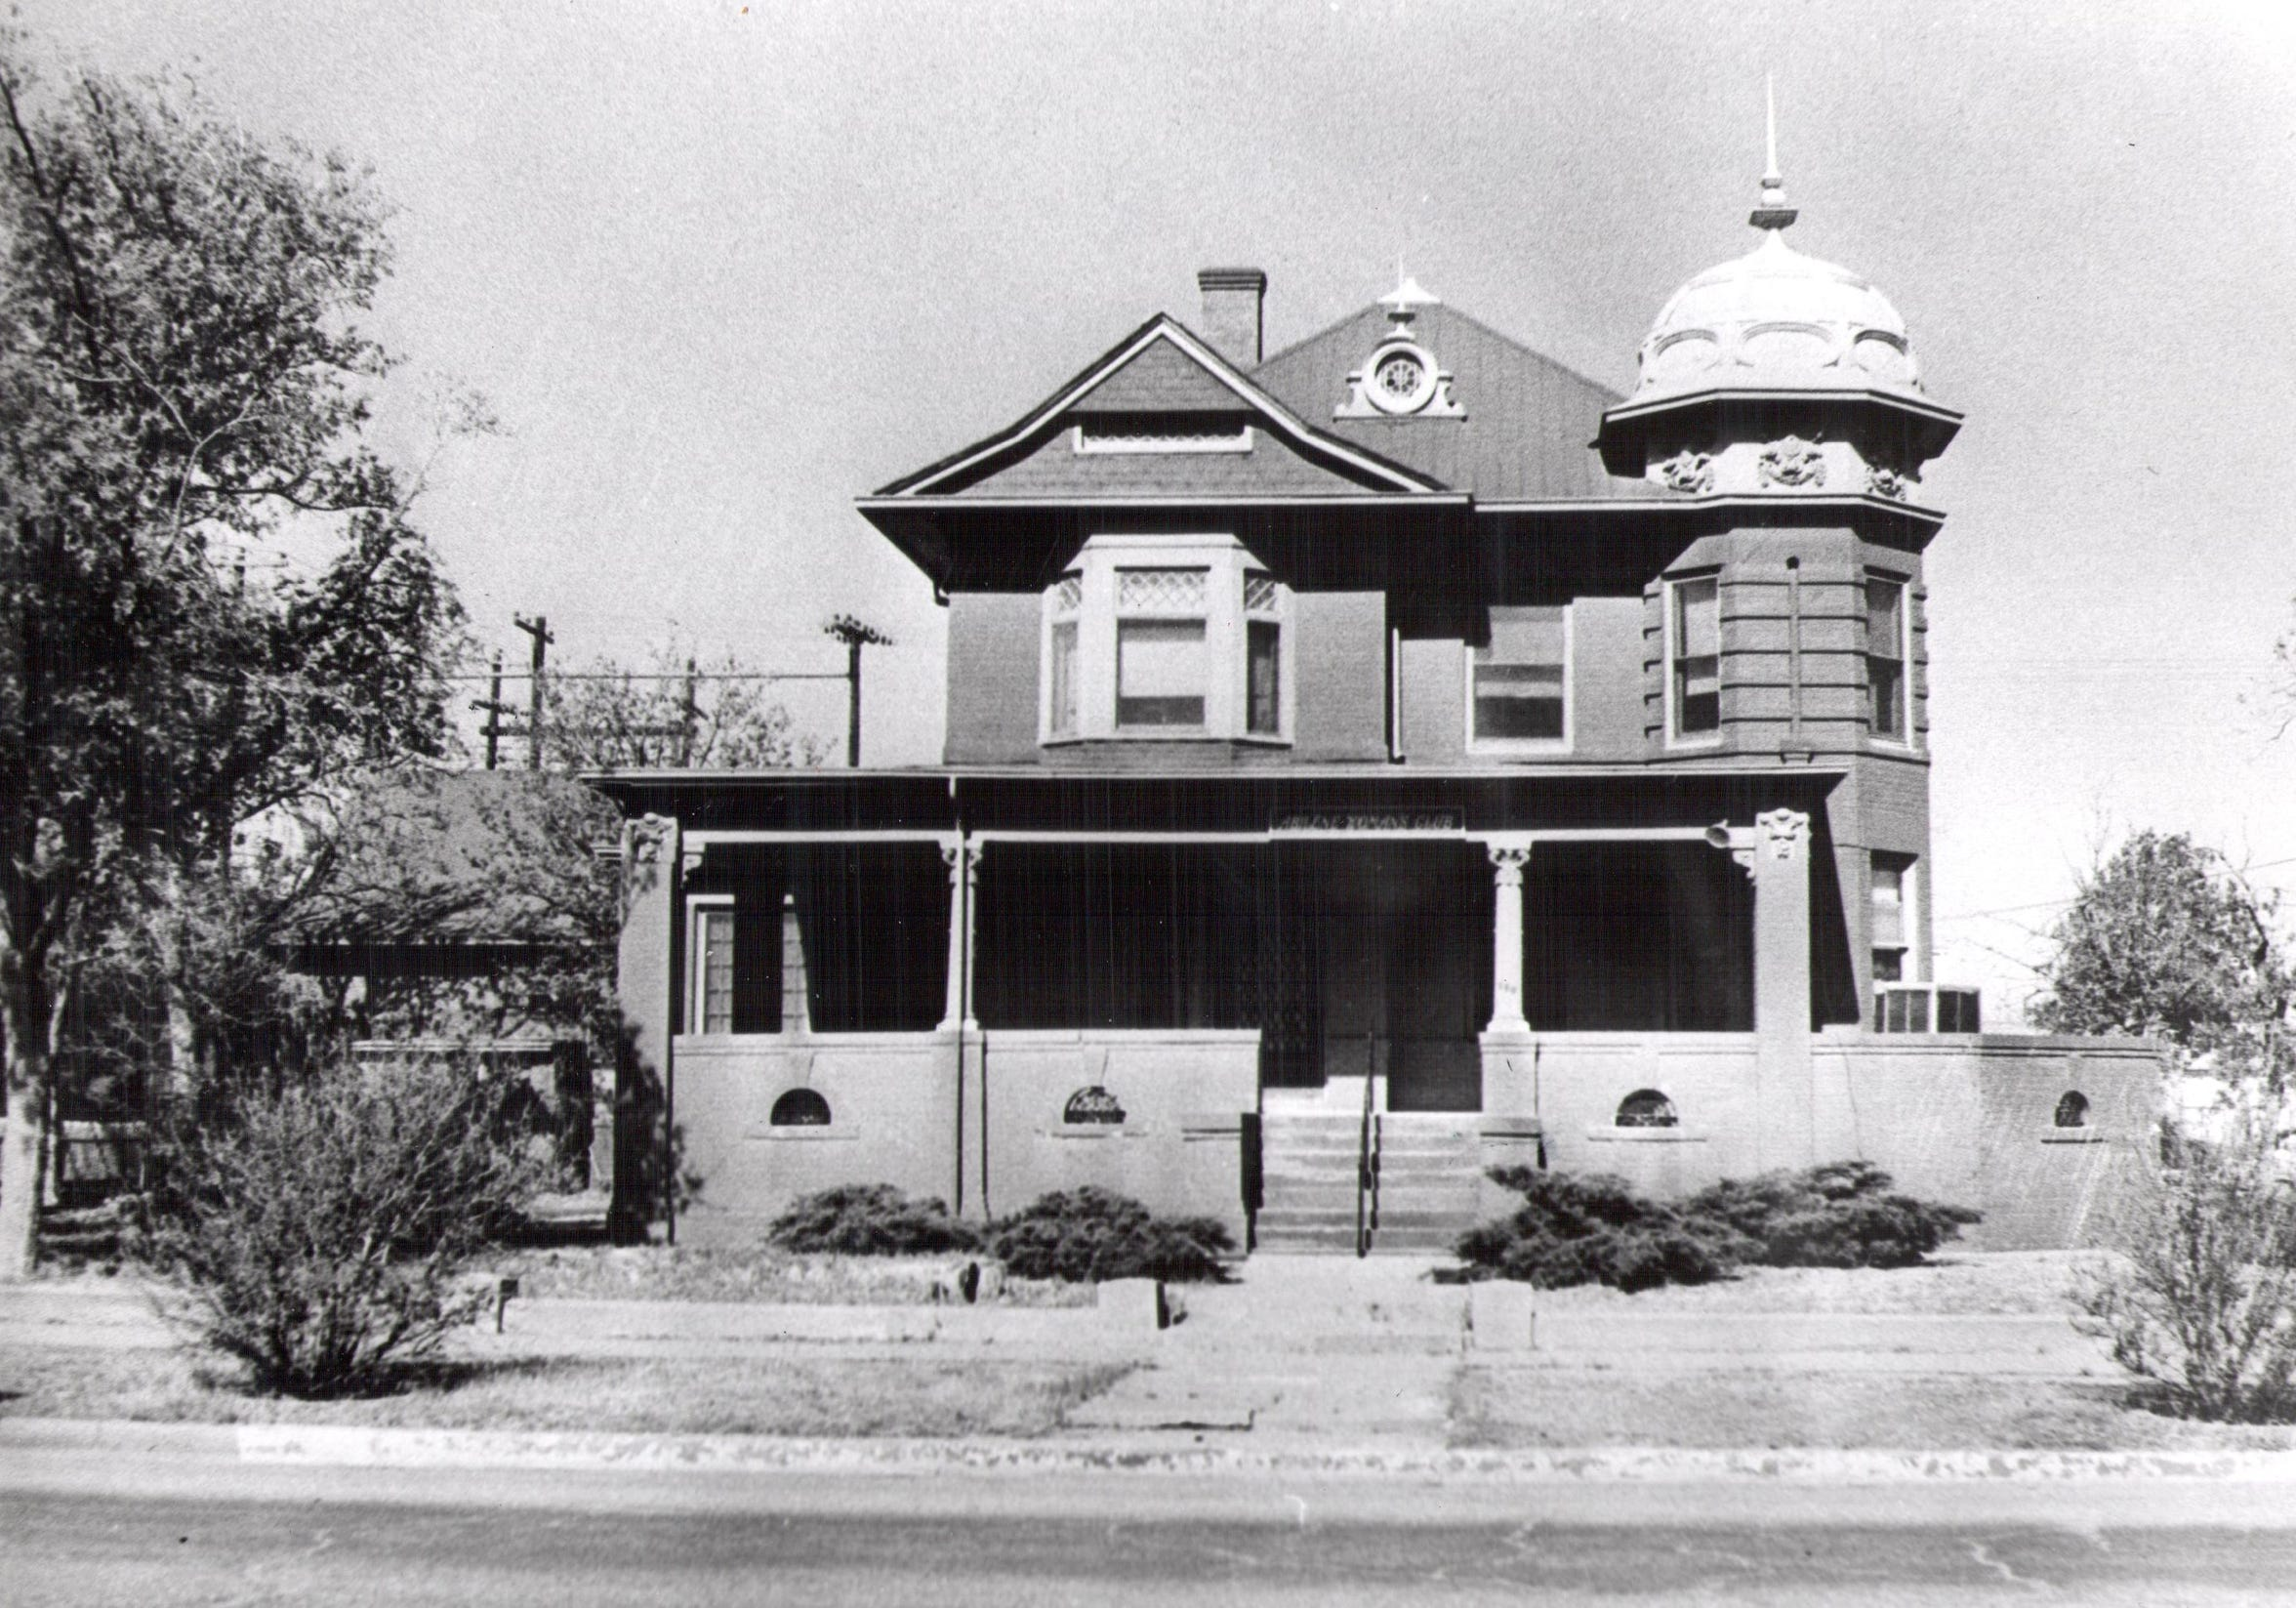 The Radford Home, which was located at 140 Hickory St., was the Abilene Woman's Club's second building.